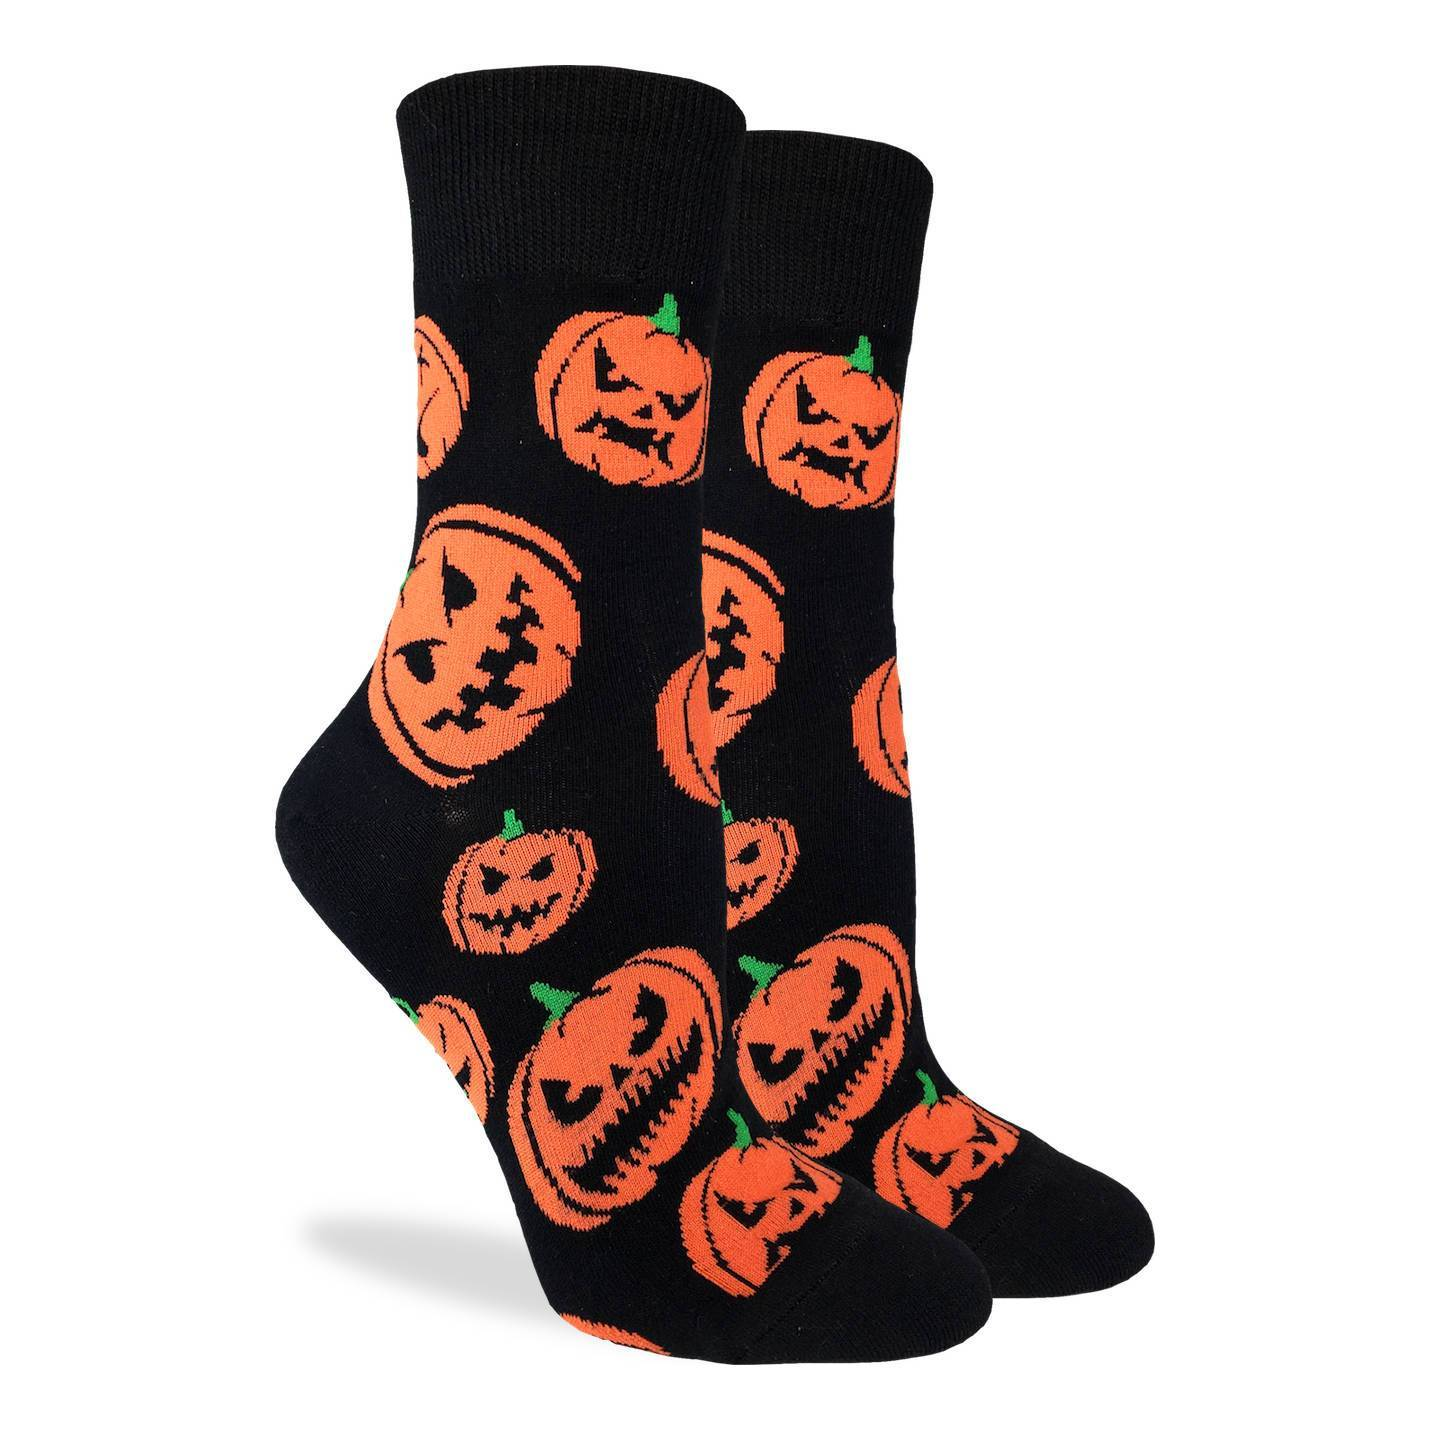 Women's Halloween Pumpkins Socks - Good Luck Sock